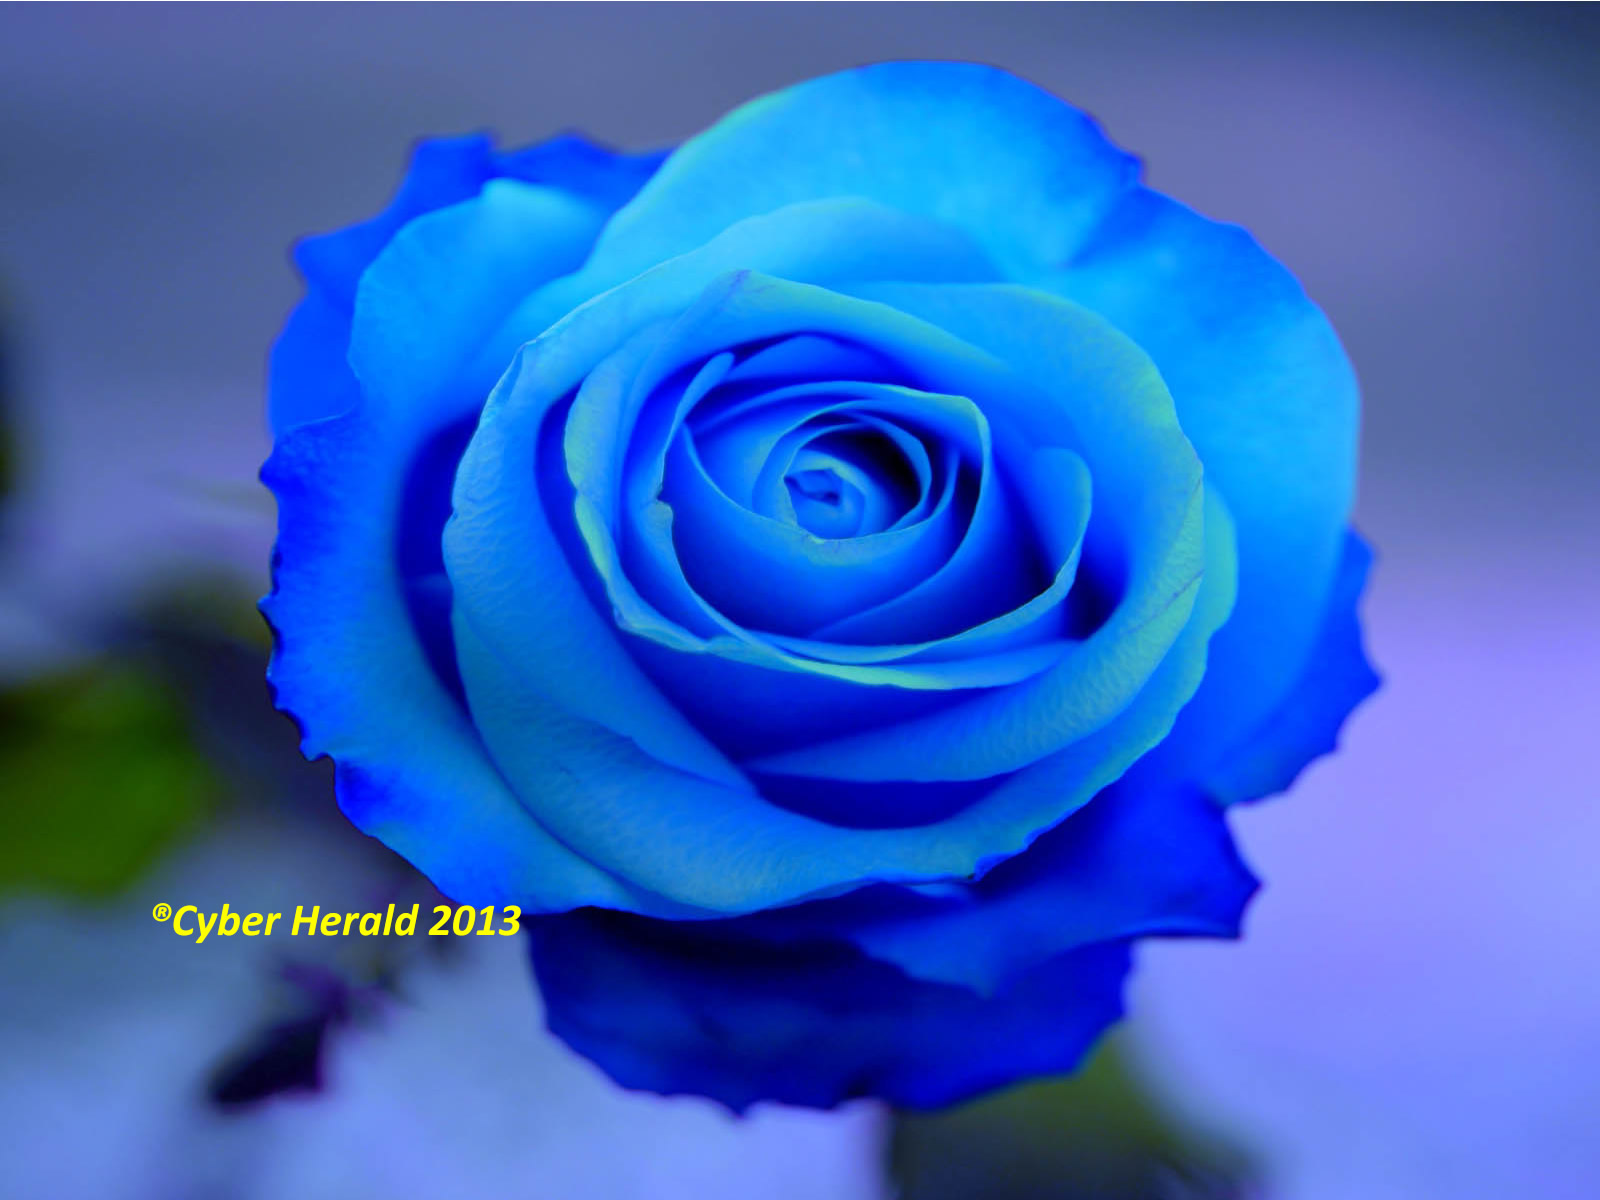 Blue color rose pic best hd wallpaper sky blue color rose images allofpicts source cyber herald rose symbolism of its colors and numbers buycottarizona